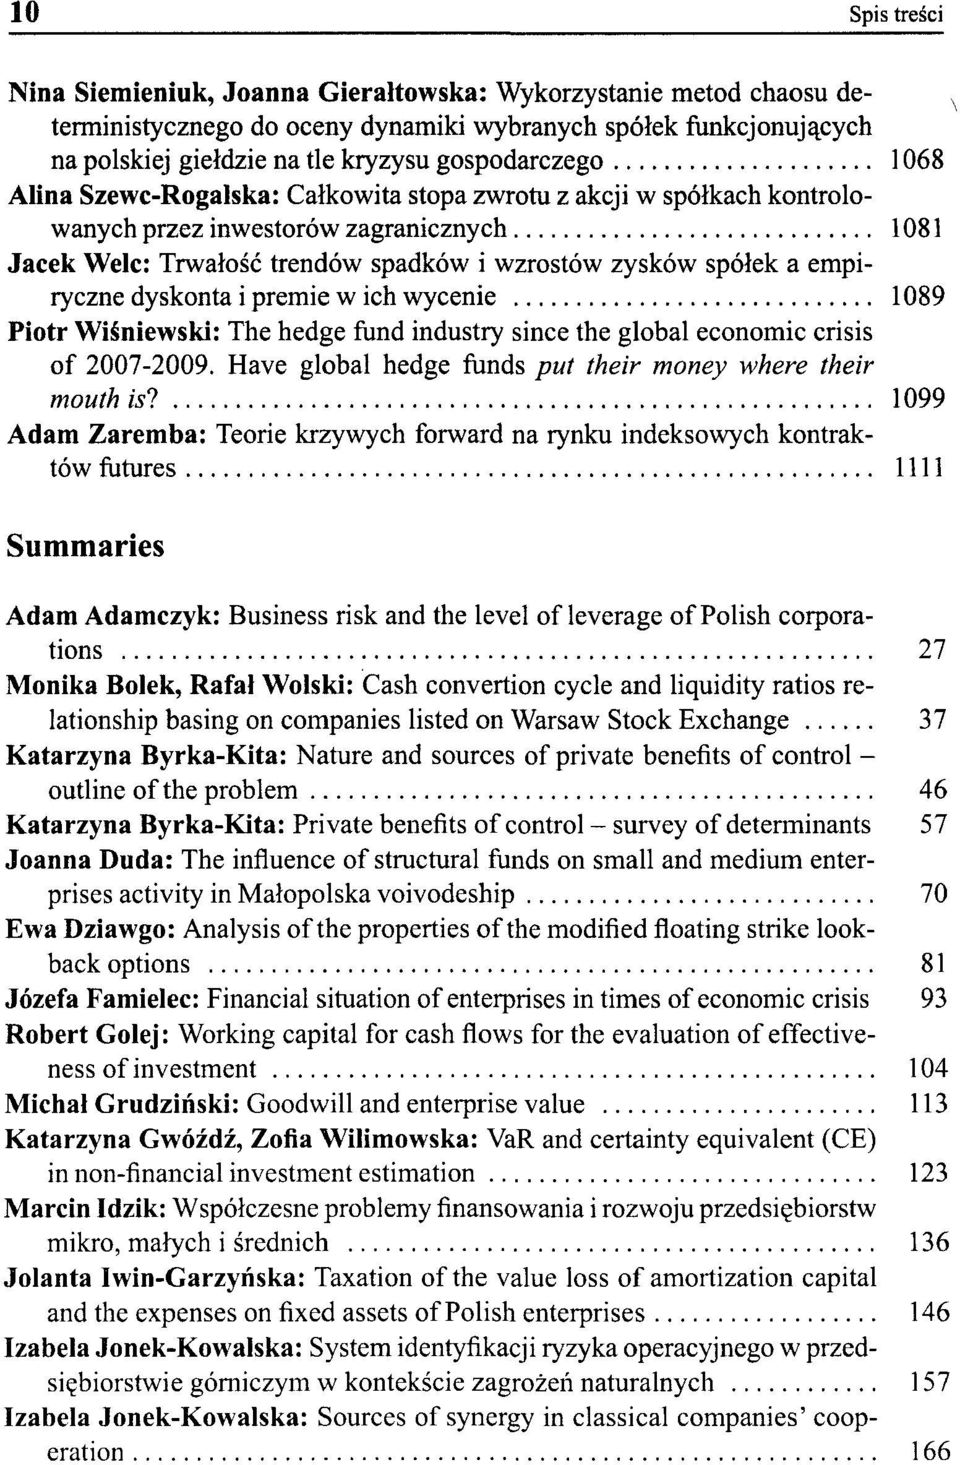 empiryczne dyskonta i premie w ich wycenie 1089 Piotr Wiśniewski: The hedge fund industry sińce the global economic crisis of 2007-2009.